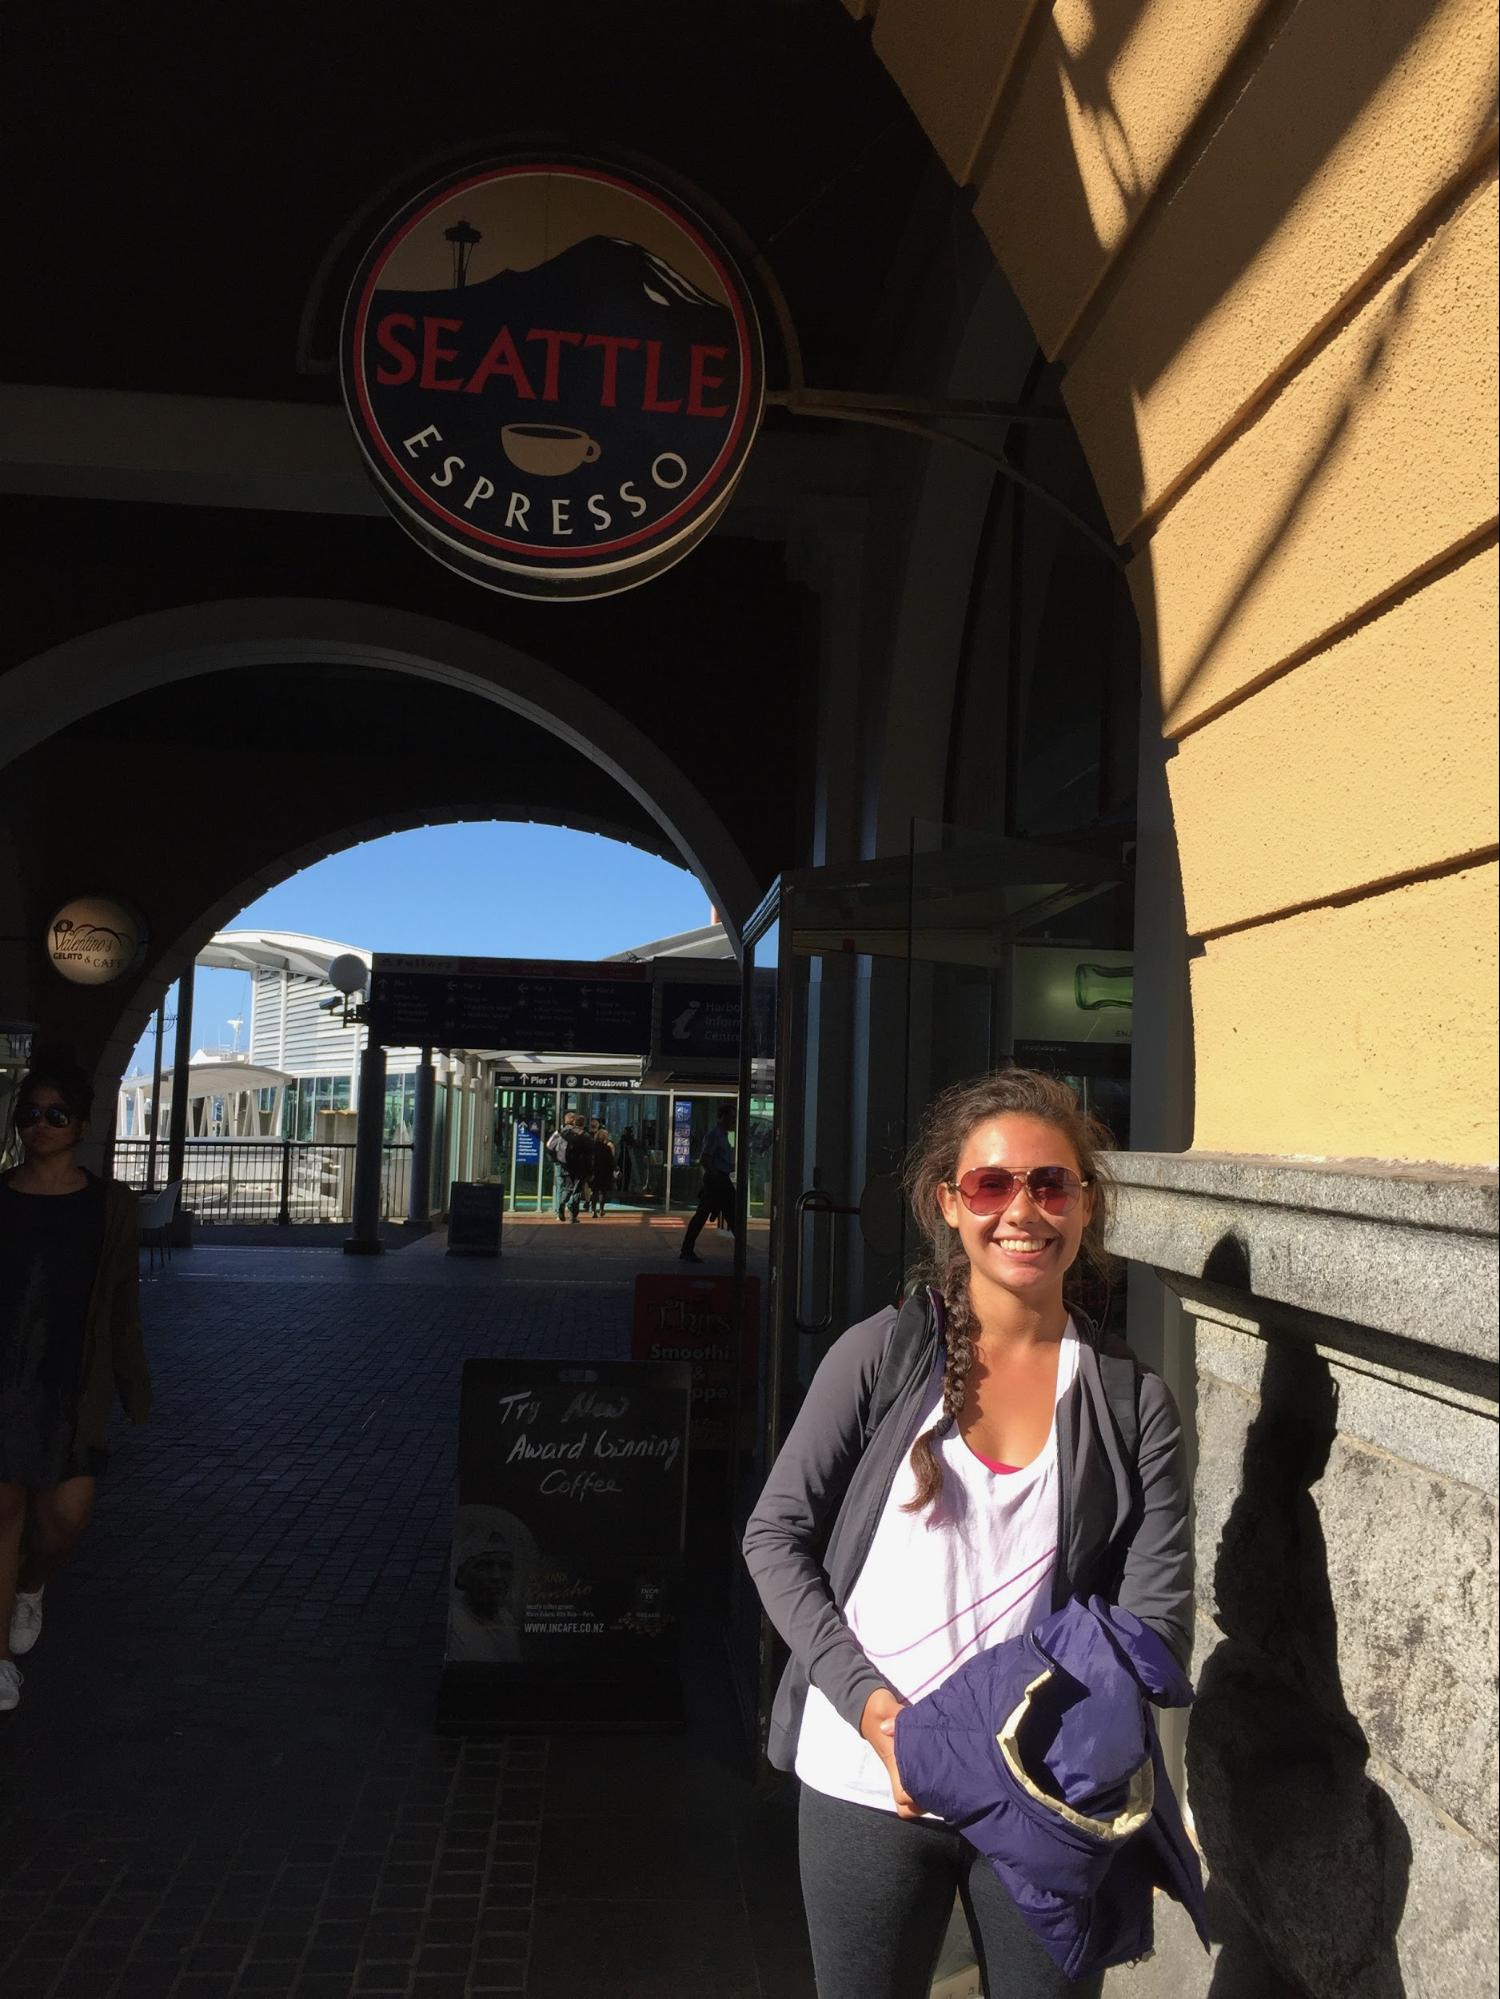 """A woman posing in front of the """"Seattle Espresso"""" coffee shop in Auckland, NZ."""